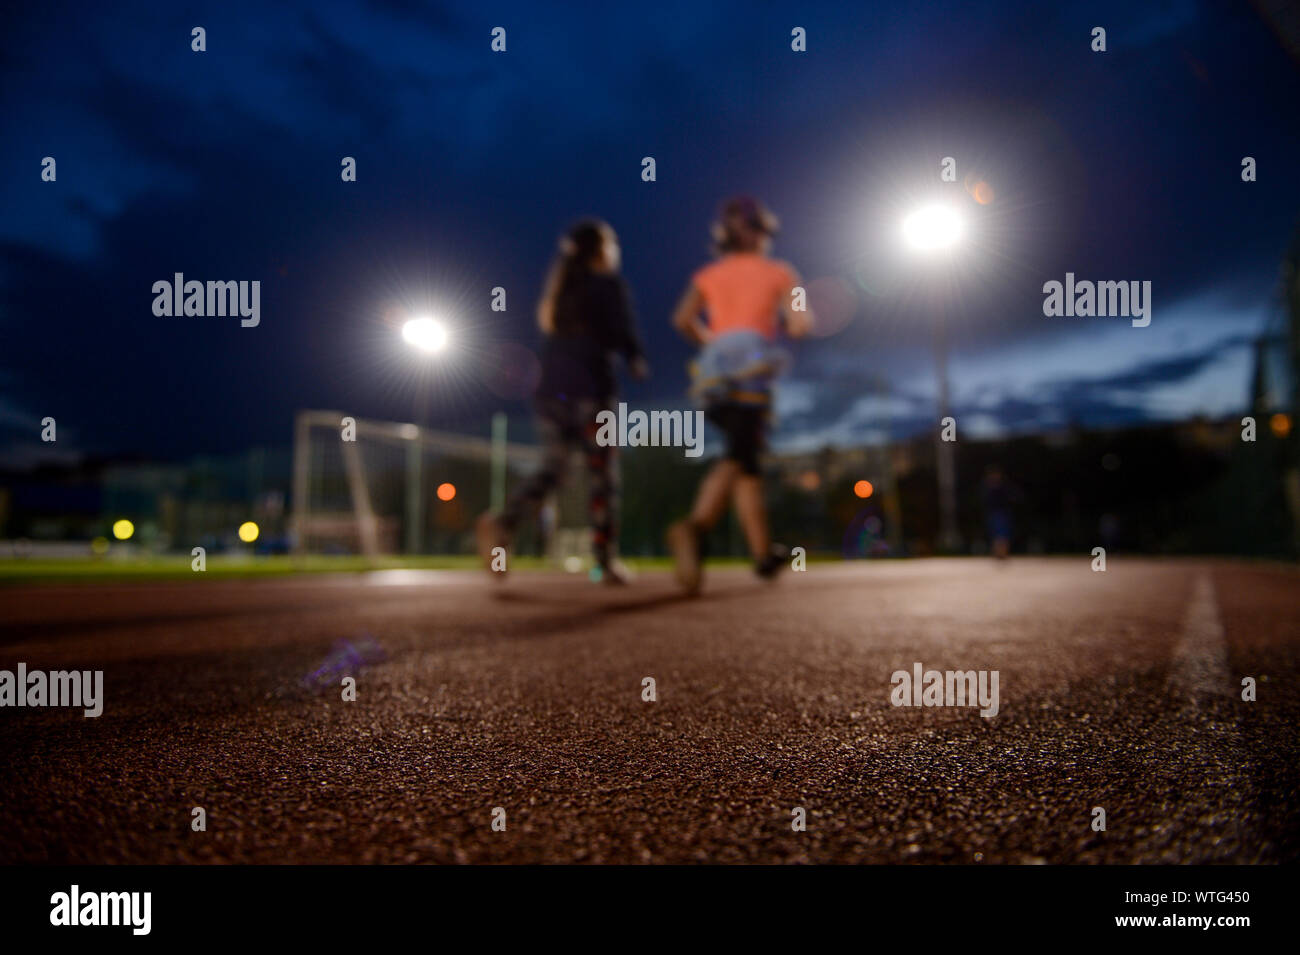 two young females running on outdoor stadium track at twilight Stock Photo